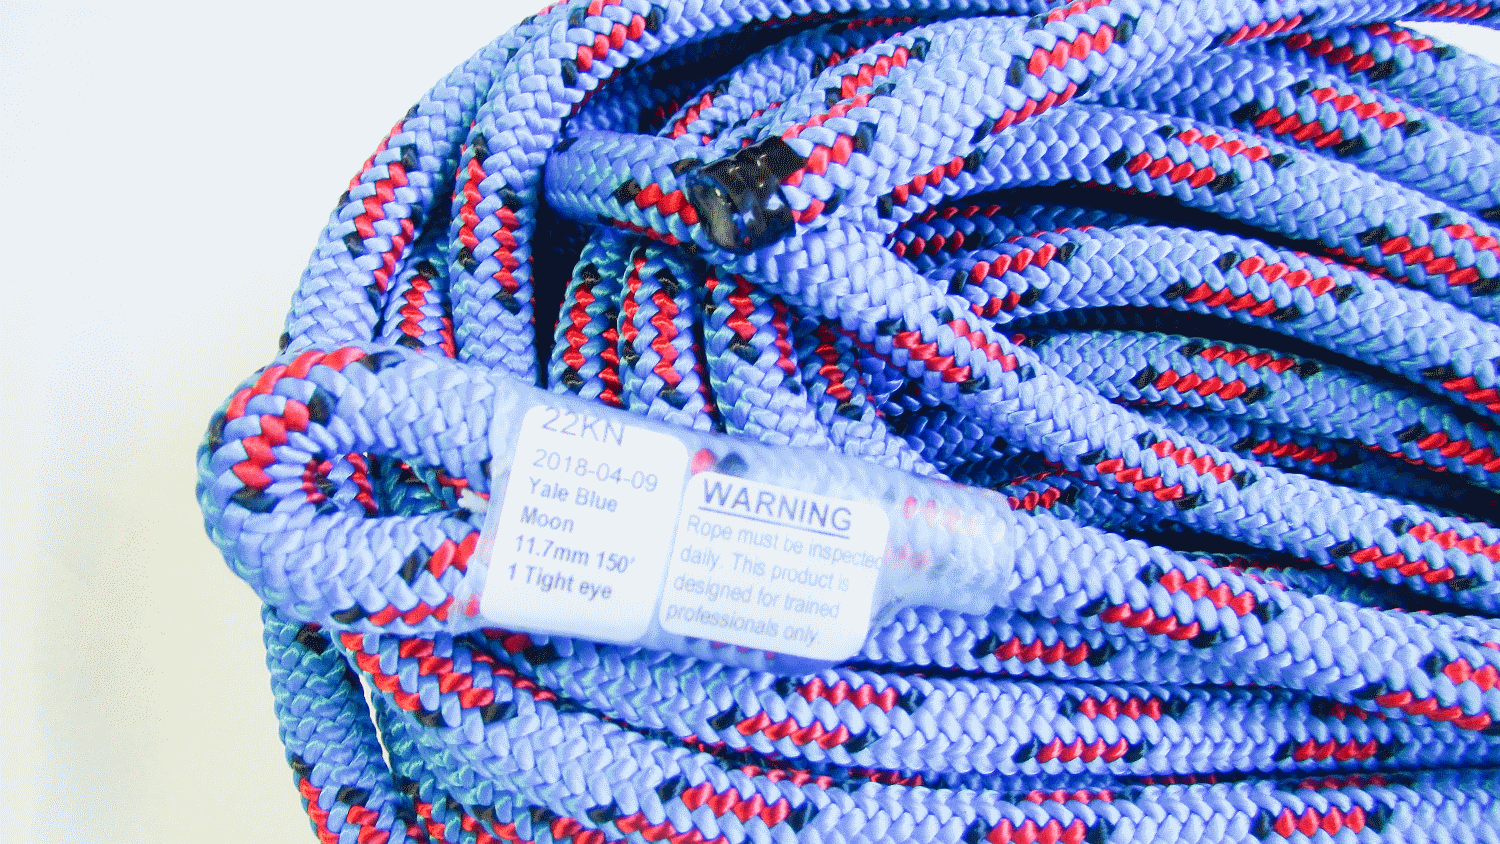 Blue Moon Climbing Rope with Tight Eye